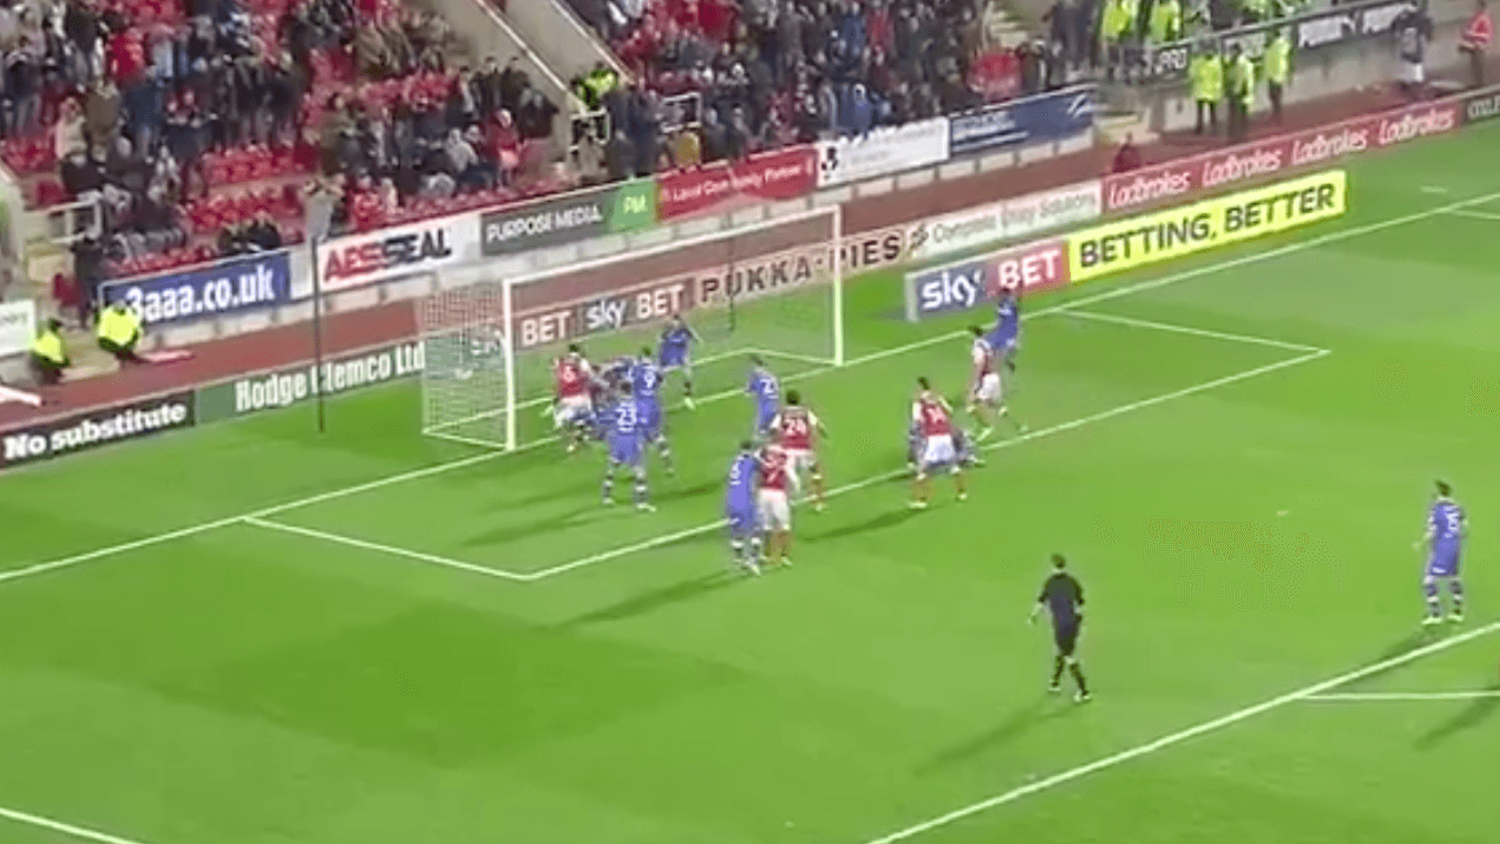 Rotherham United fail to score in incredible goalmouth scramble